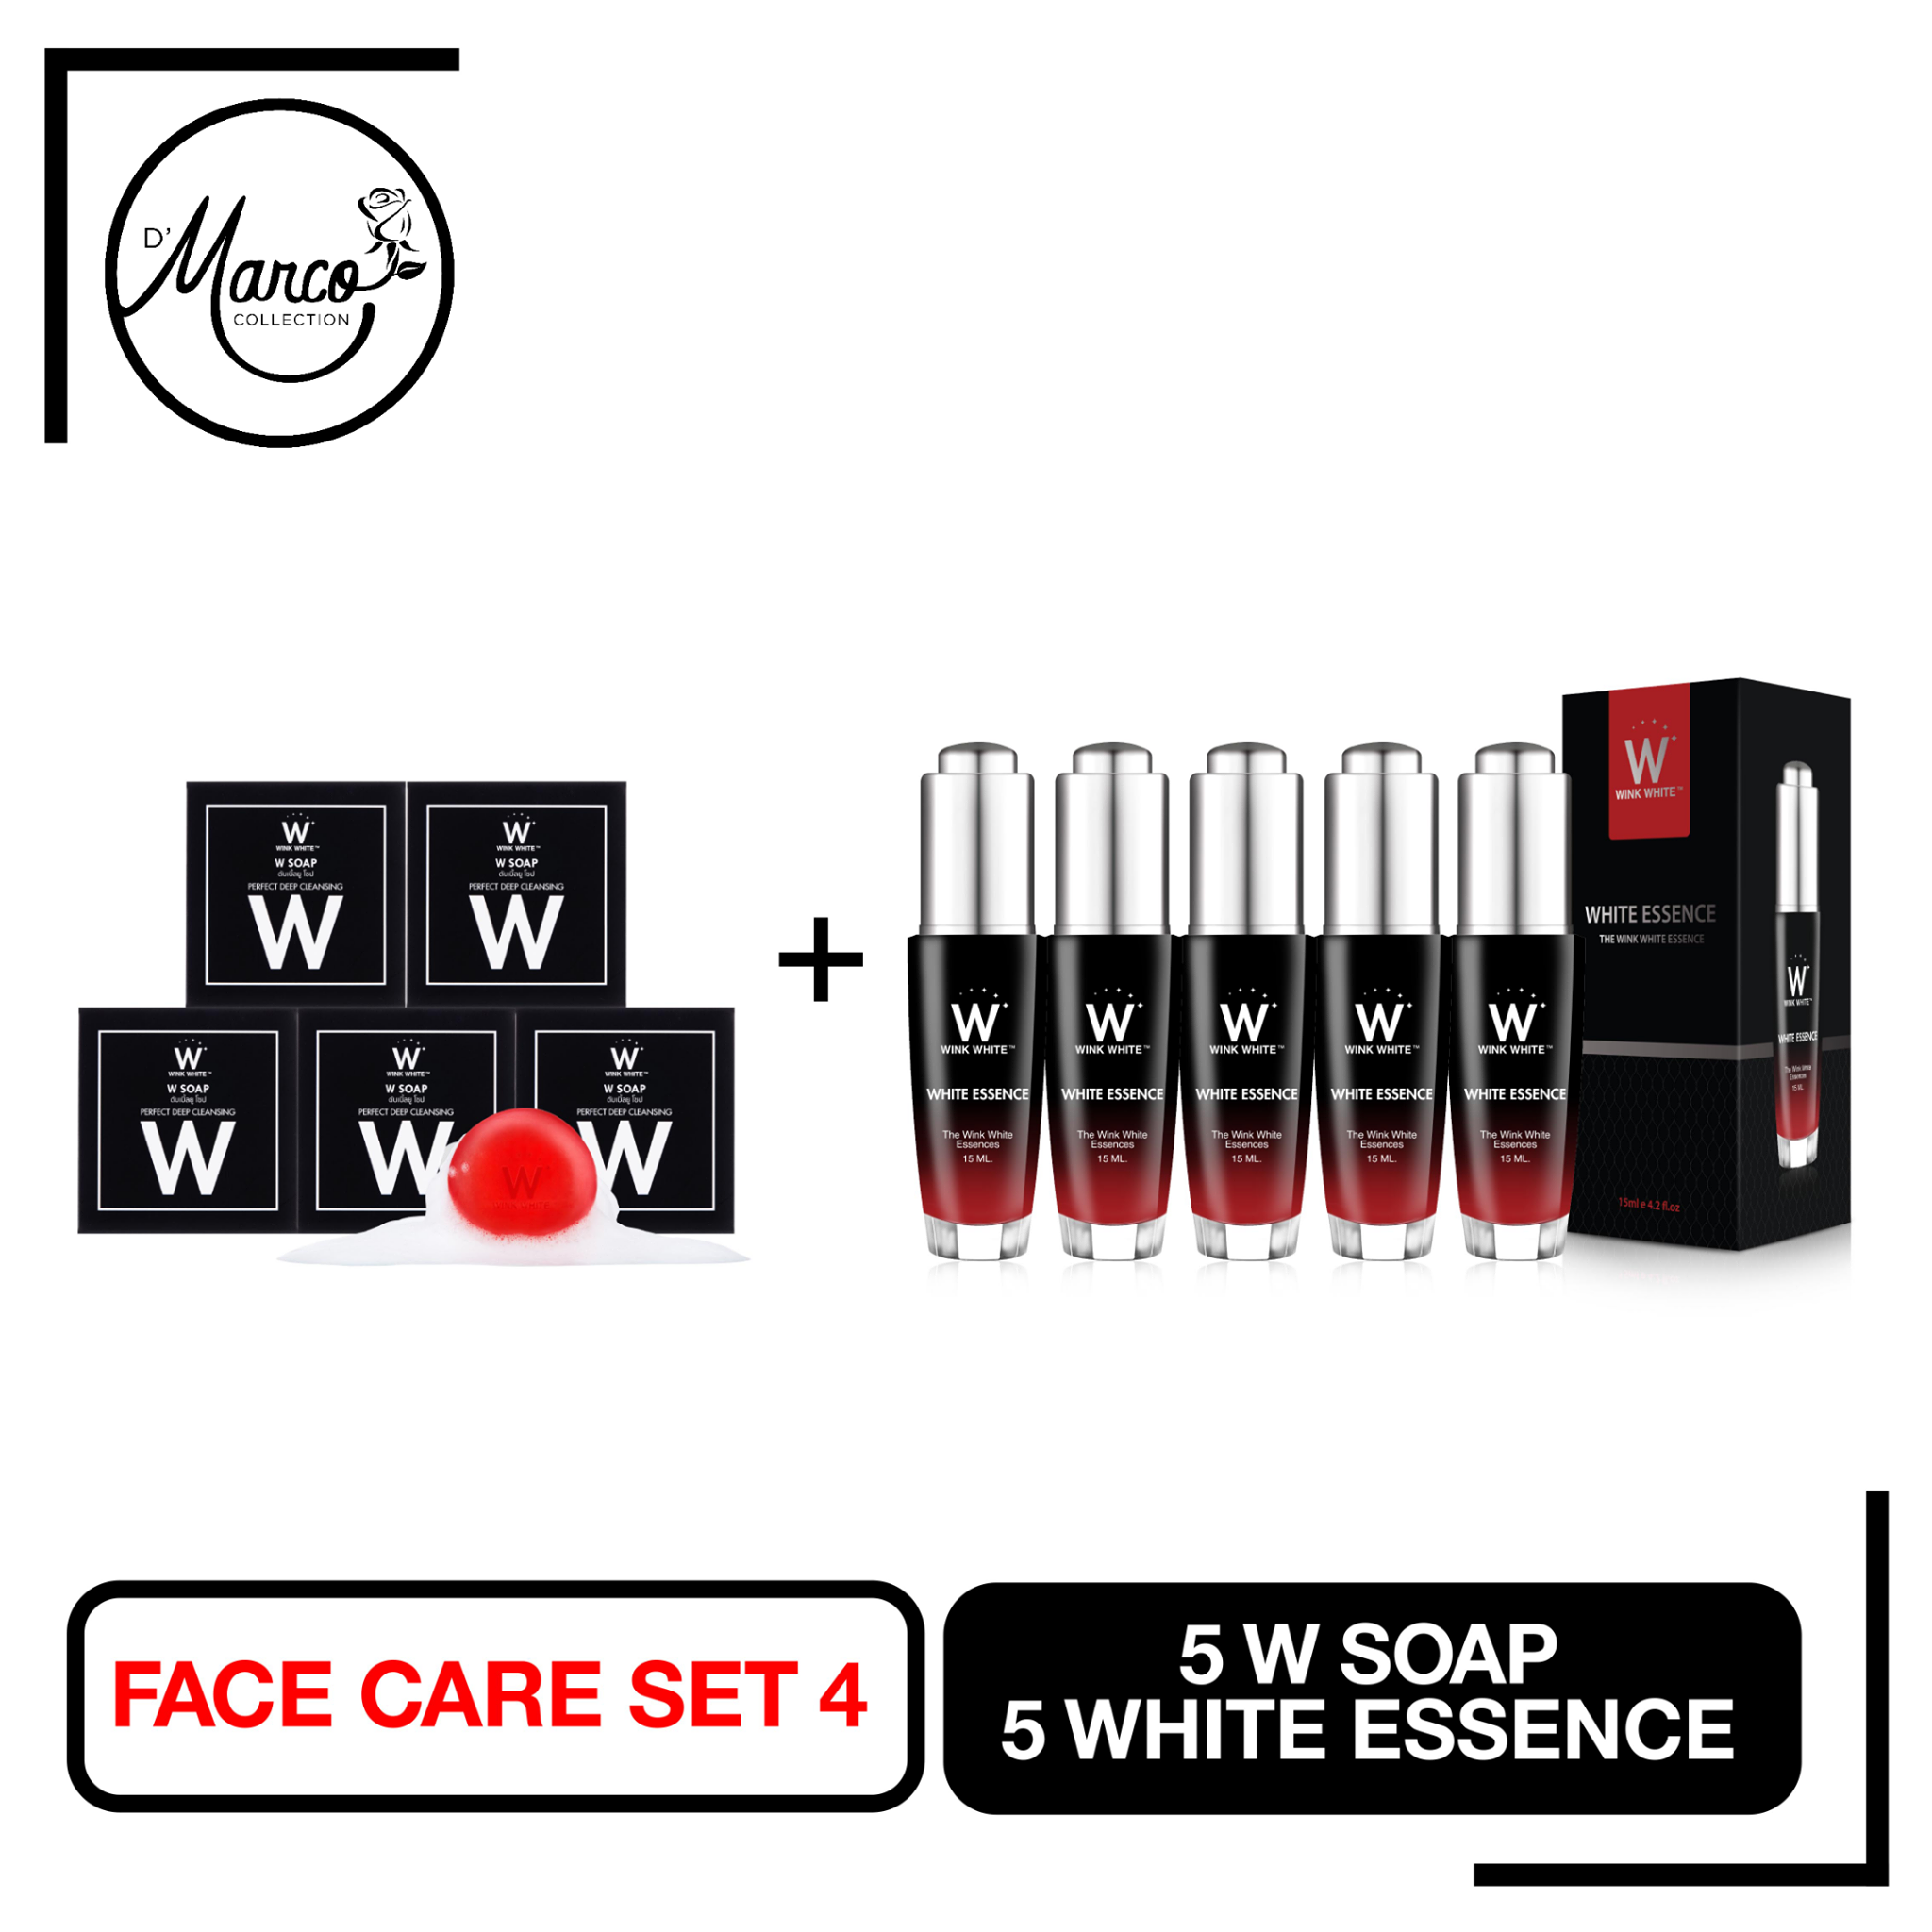 Facial Set 4, 5 W Soap, 5 White Essence